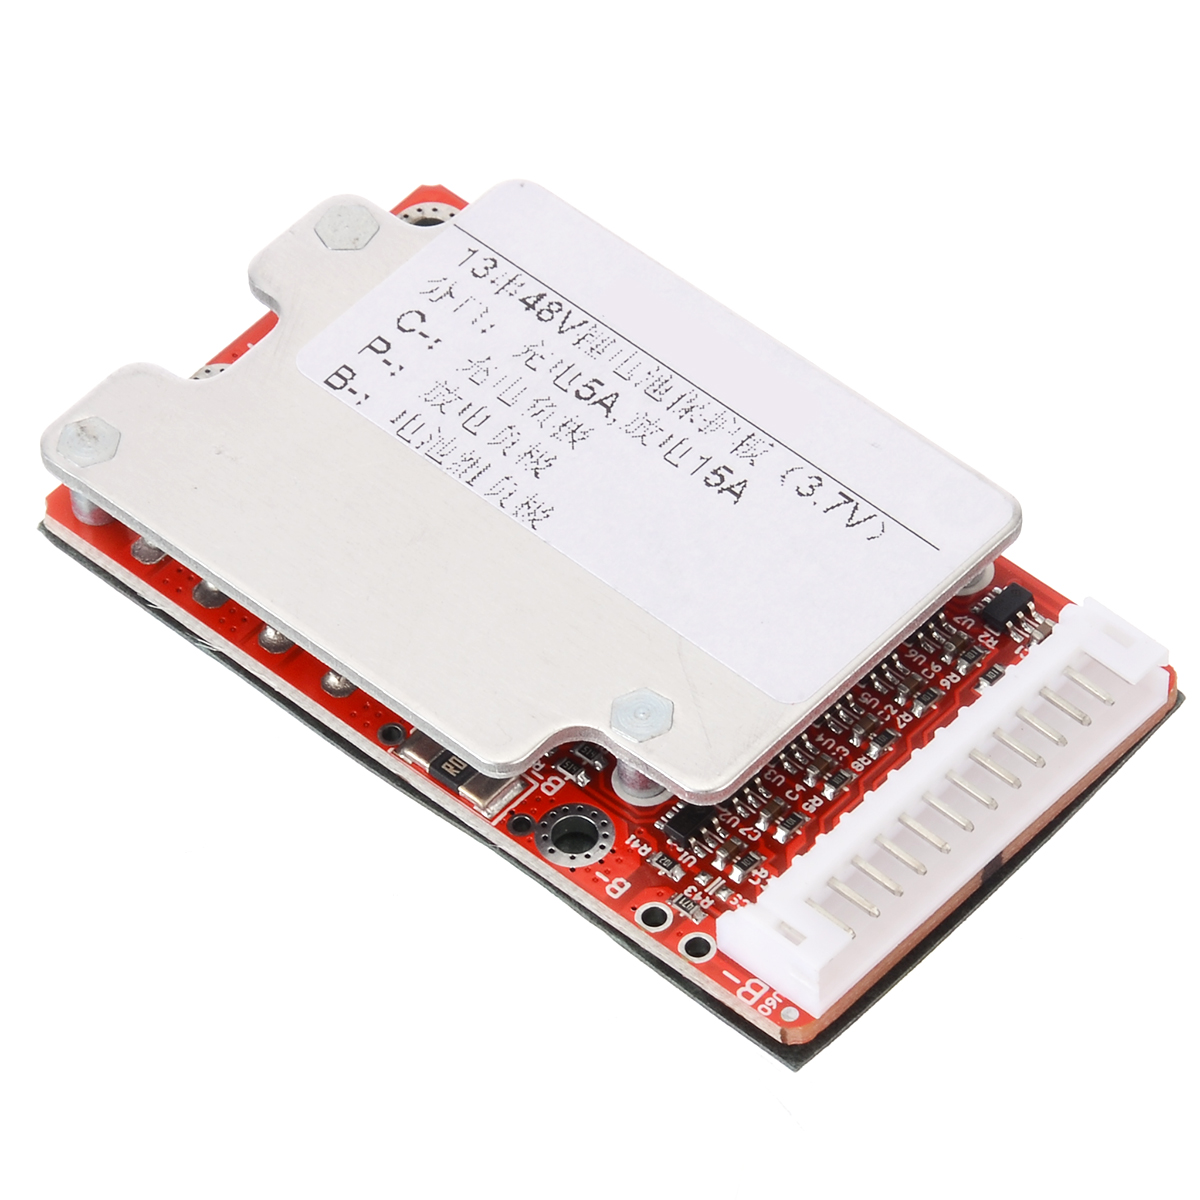 Onsale <font><b>13S</b></font> 48V/54.6V 15-45A 18650 Li-ion Li-Polymer Battery Pack Power Protection Board <font><b>BMS</b></font> PCB For Electric Bicycle image